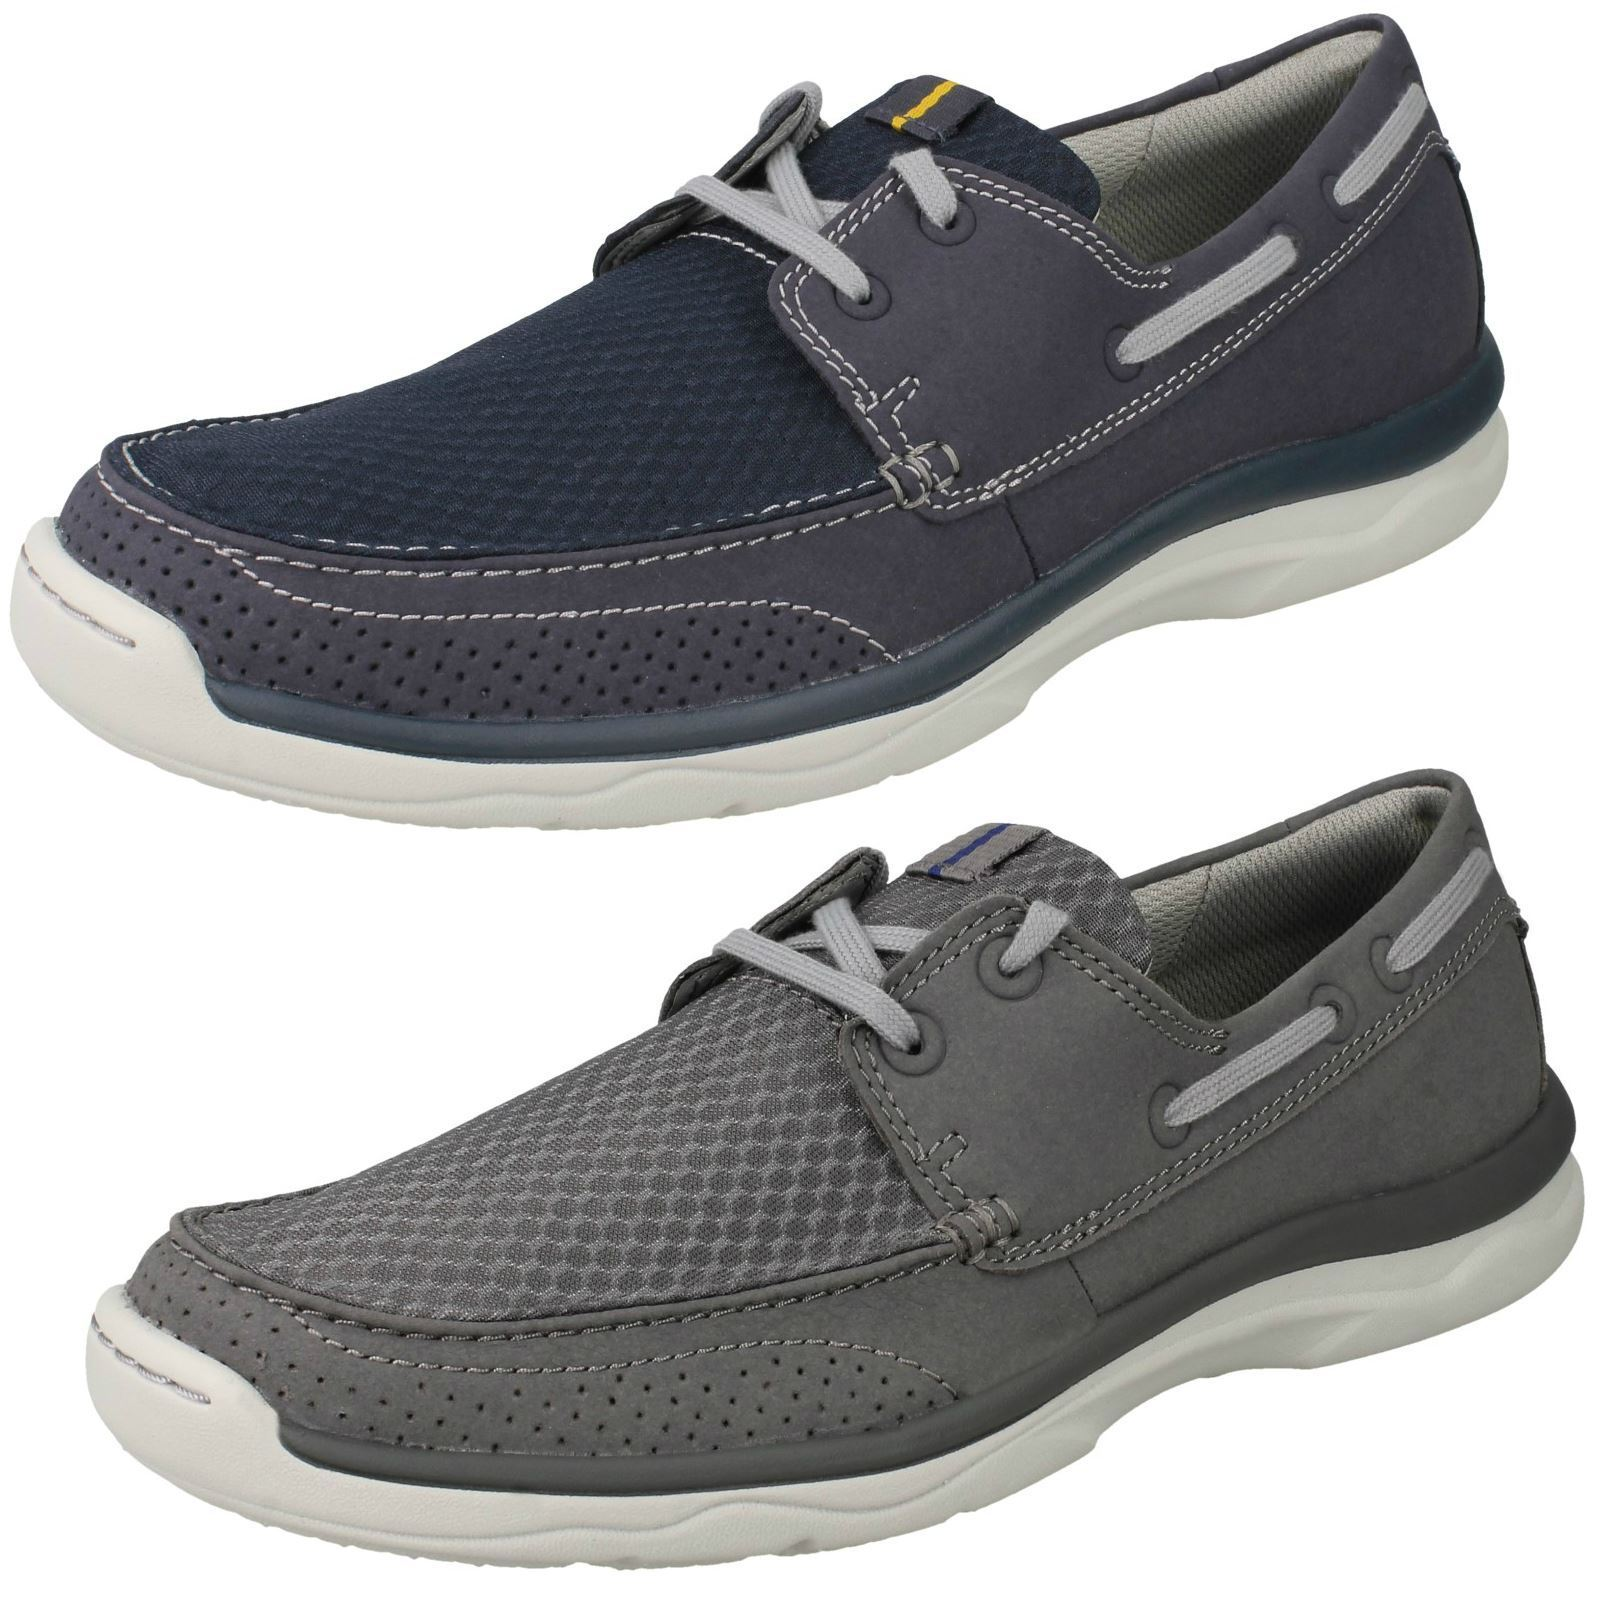 Uomo Clarks Up Marus Edge Cloudsteppers Lace Up Clarks Casual Schuhes e35c3a